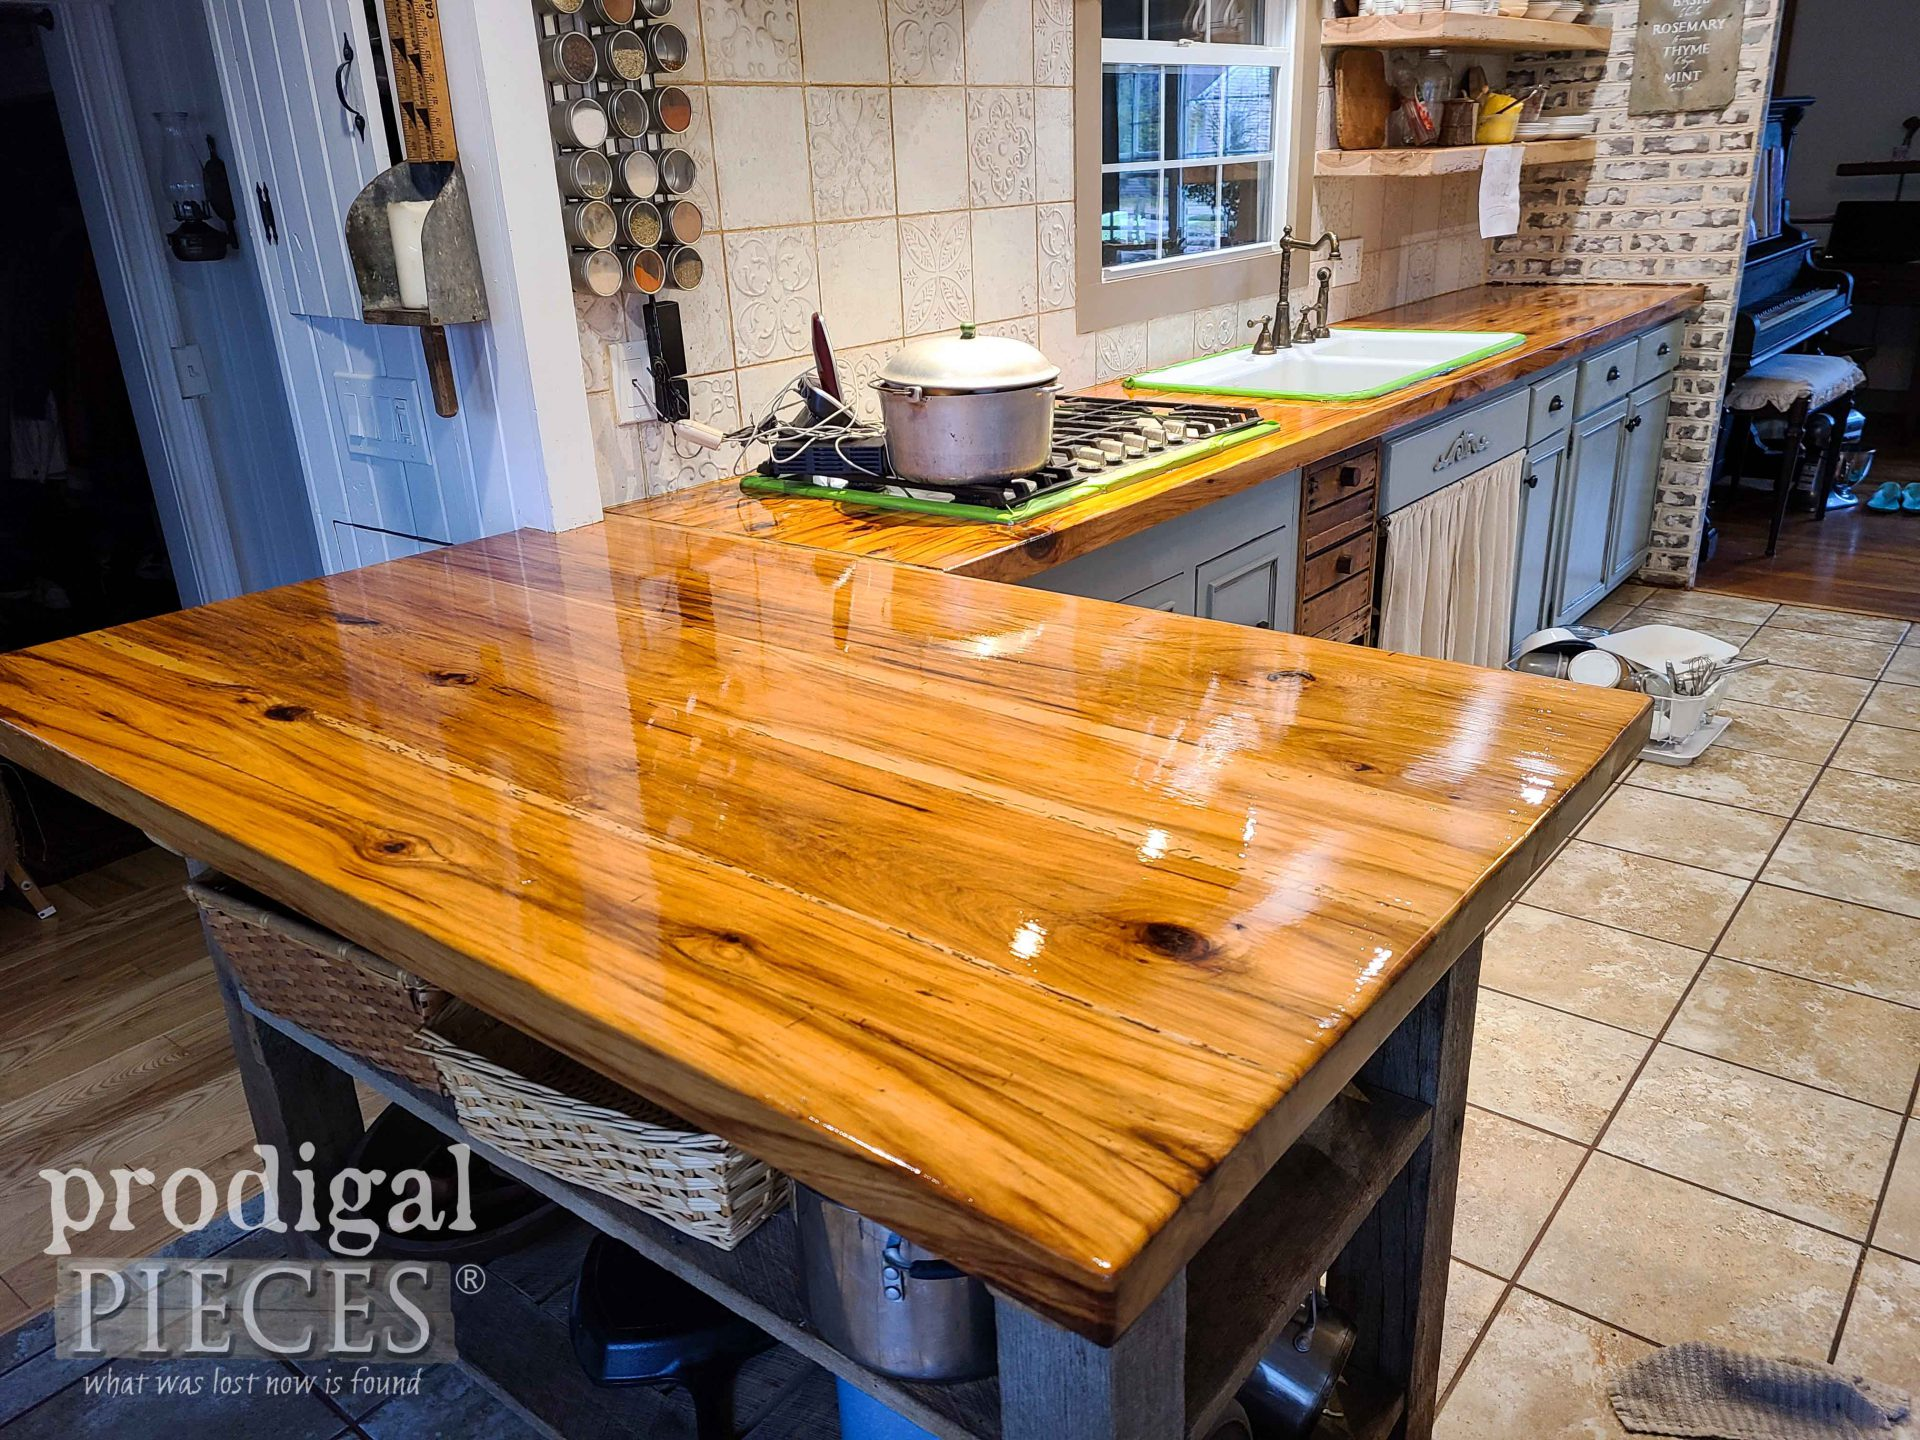 Reclaimed Wood Kitchen Counters Curing with Waterlox | by Prodigal Pieces | prodigalpieces.com #prodigalpieces #kitchen #diy